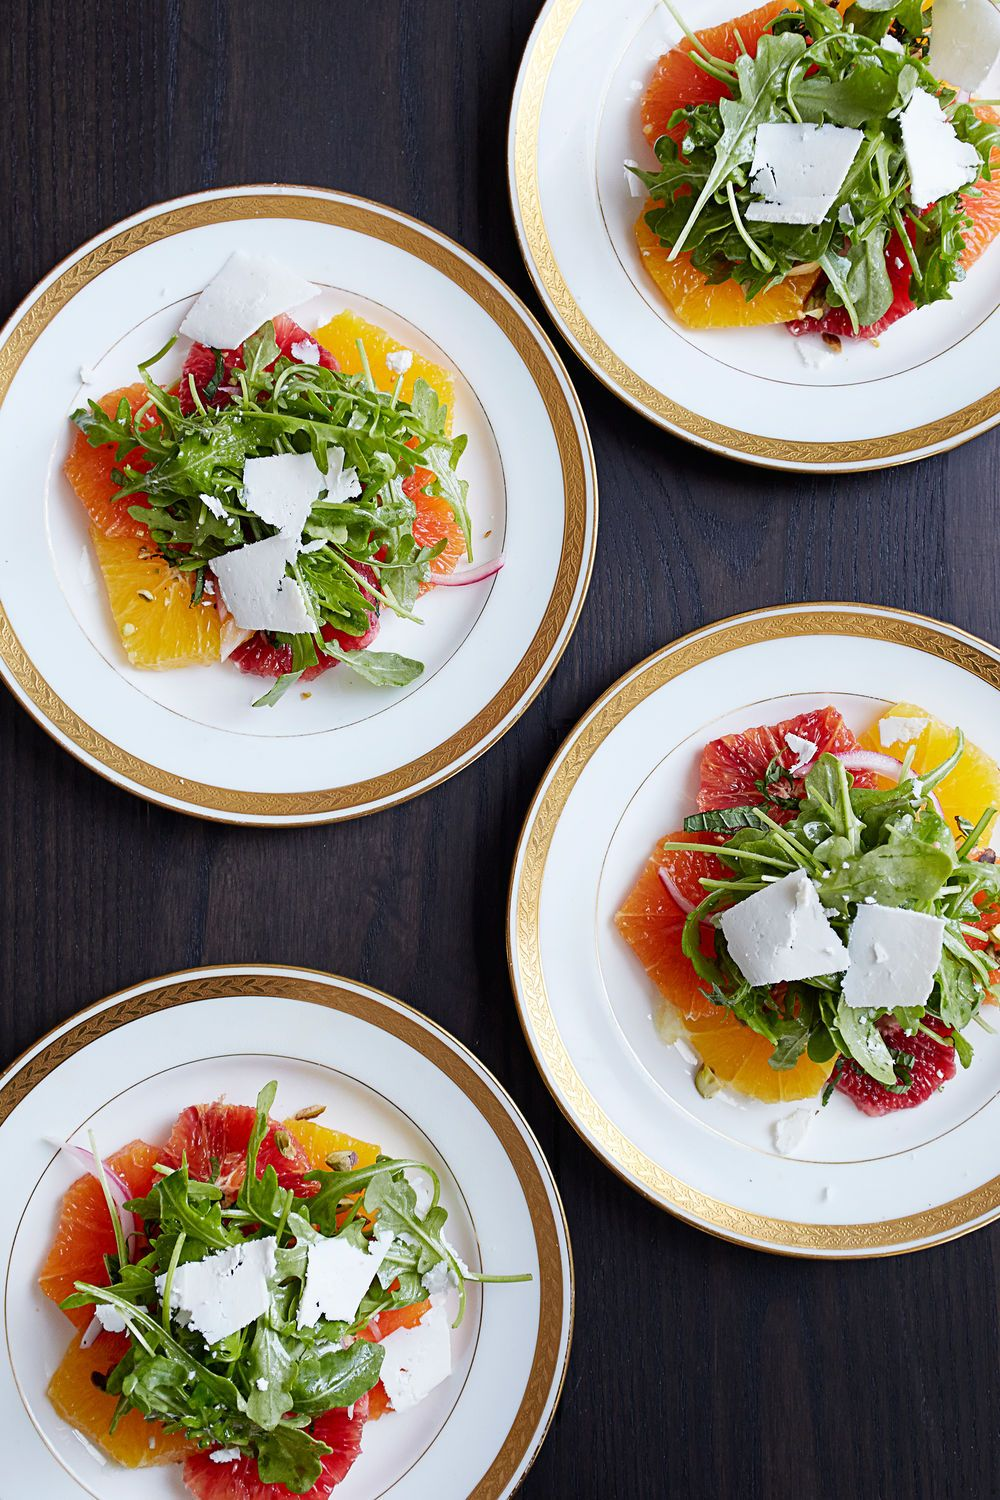 Salad Ideas For Dinner Party Part - 42: This Citrus Salad With Arugula And Ricotta Salata Is The Perfect Starter  Course For A Winter